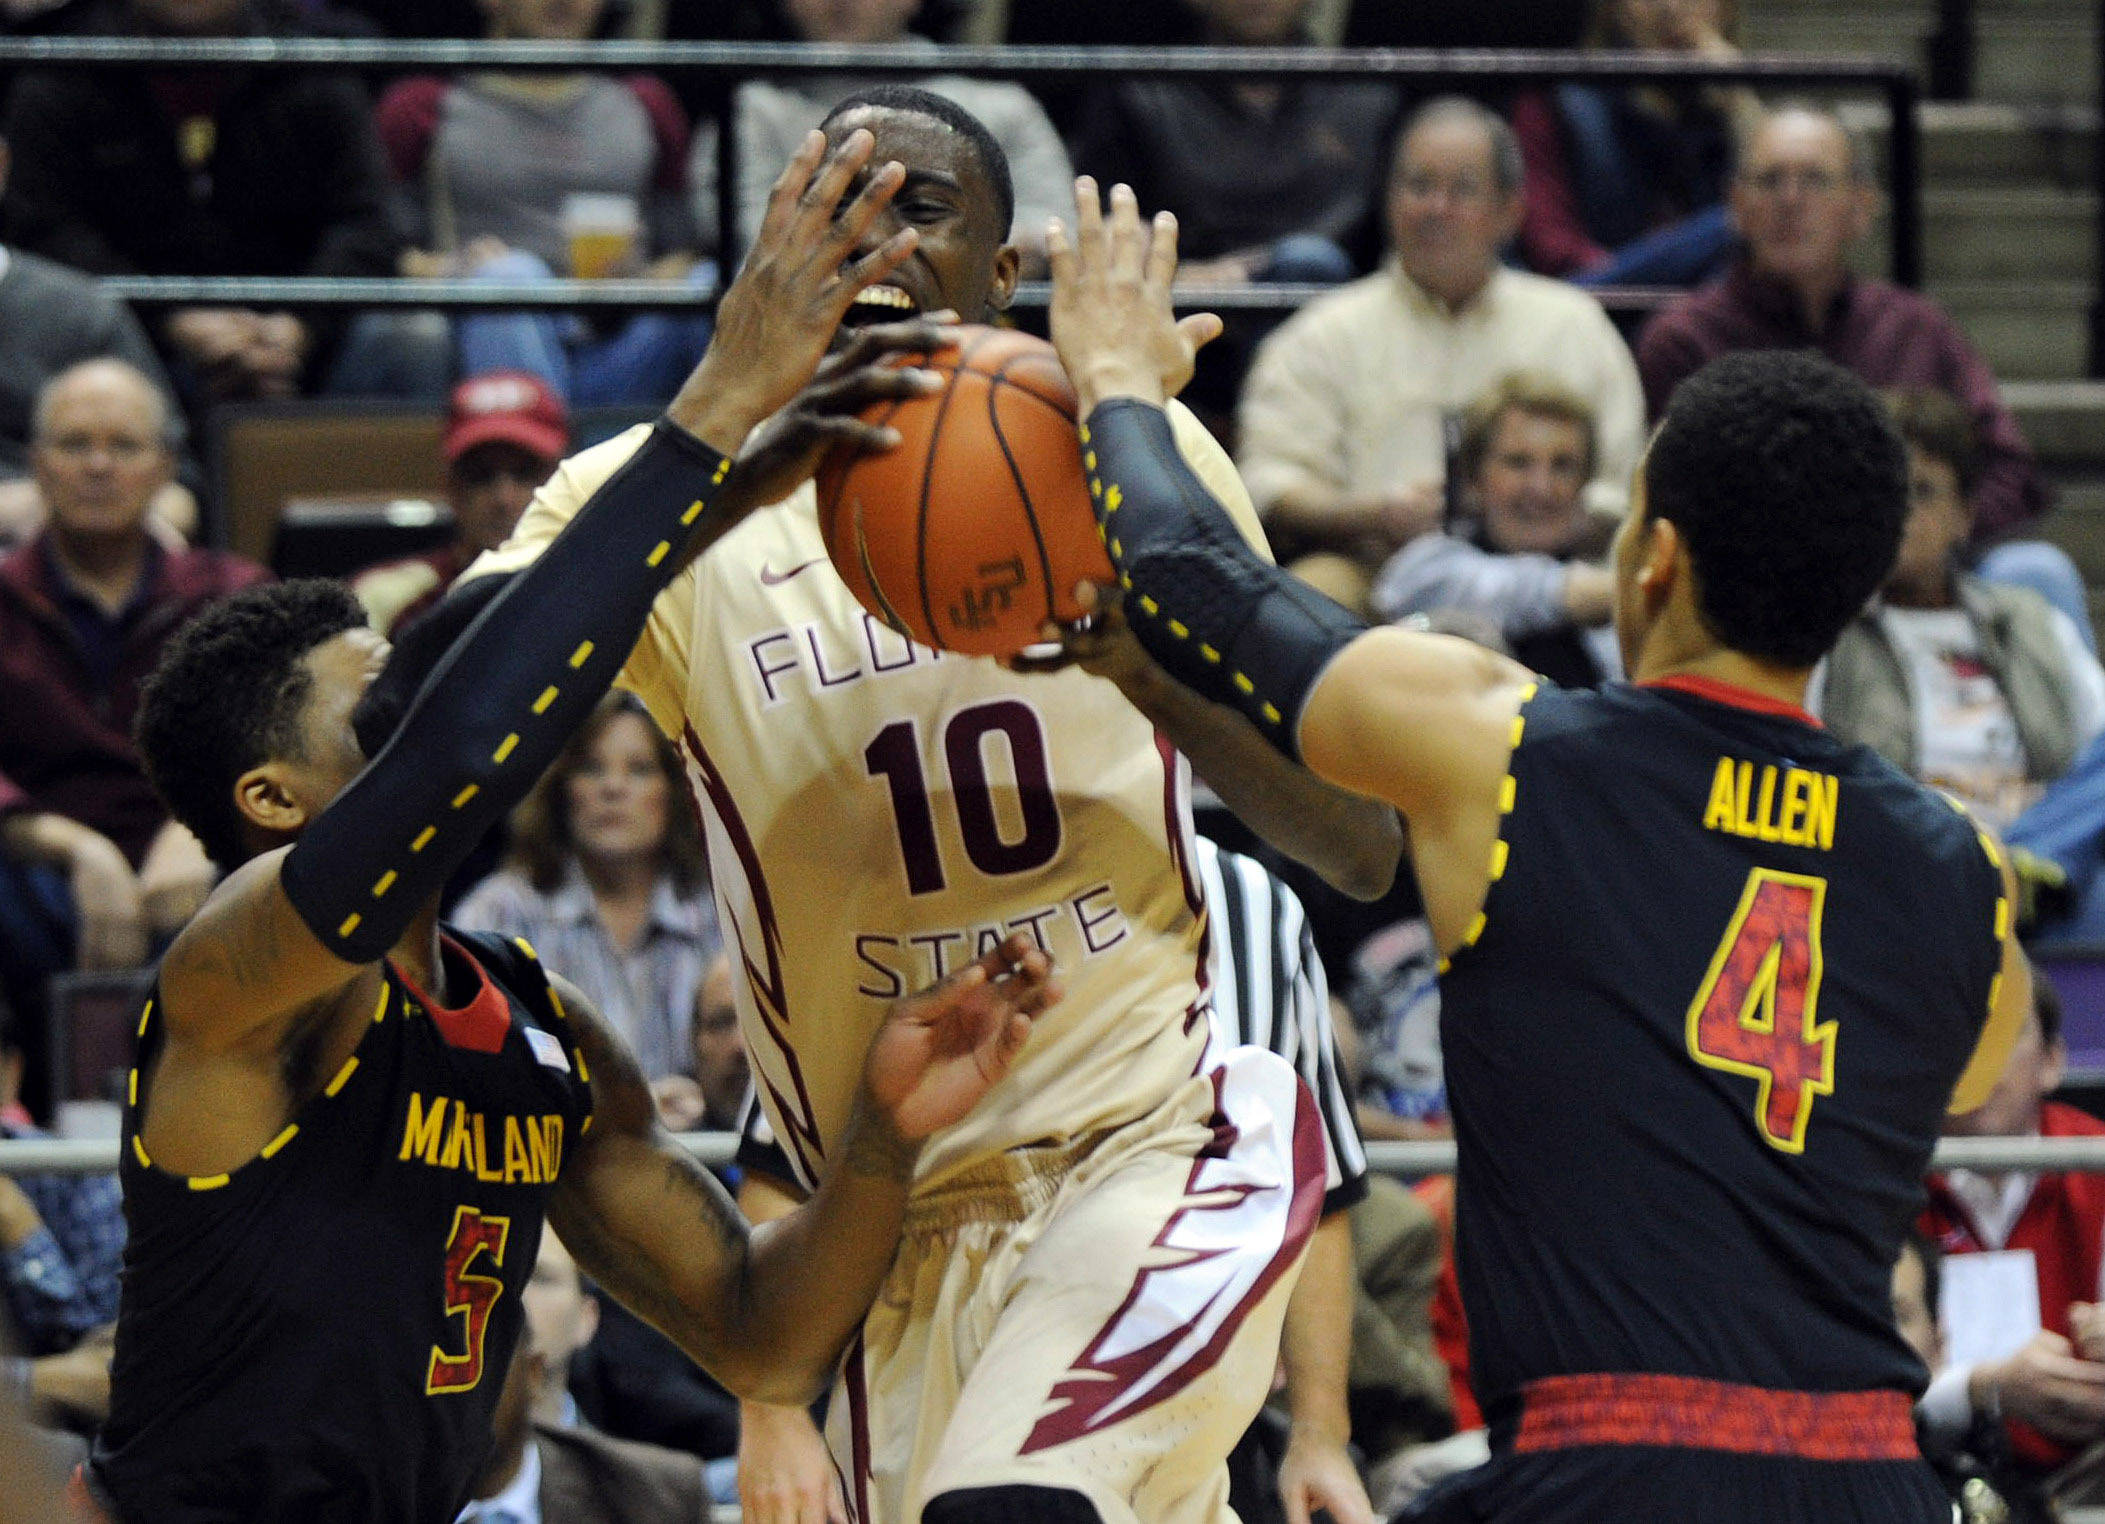 Jan 12, 2014; Tallahassee, FL, USA; Florida State Seminoles forward Okaro White (10) is fouled as he is defended by Maryland Terrapins guard Seth Allen (4) and guard Nick Faust (5) during the first half at Donald L. Tucker Center. Mandatory Credit: Melina Vastola-USA TODAY Sports